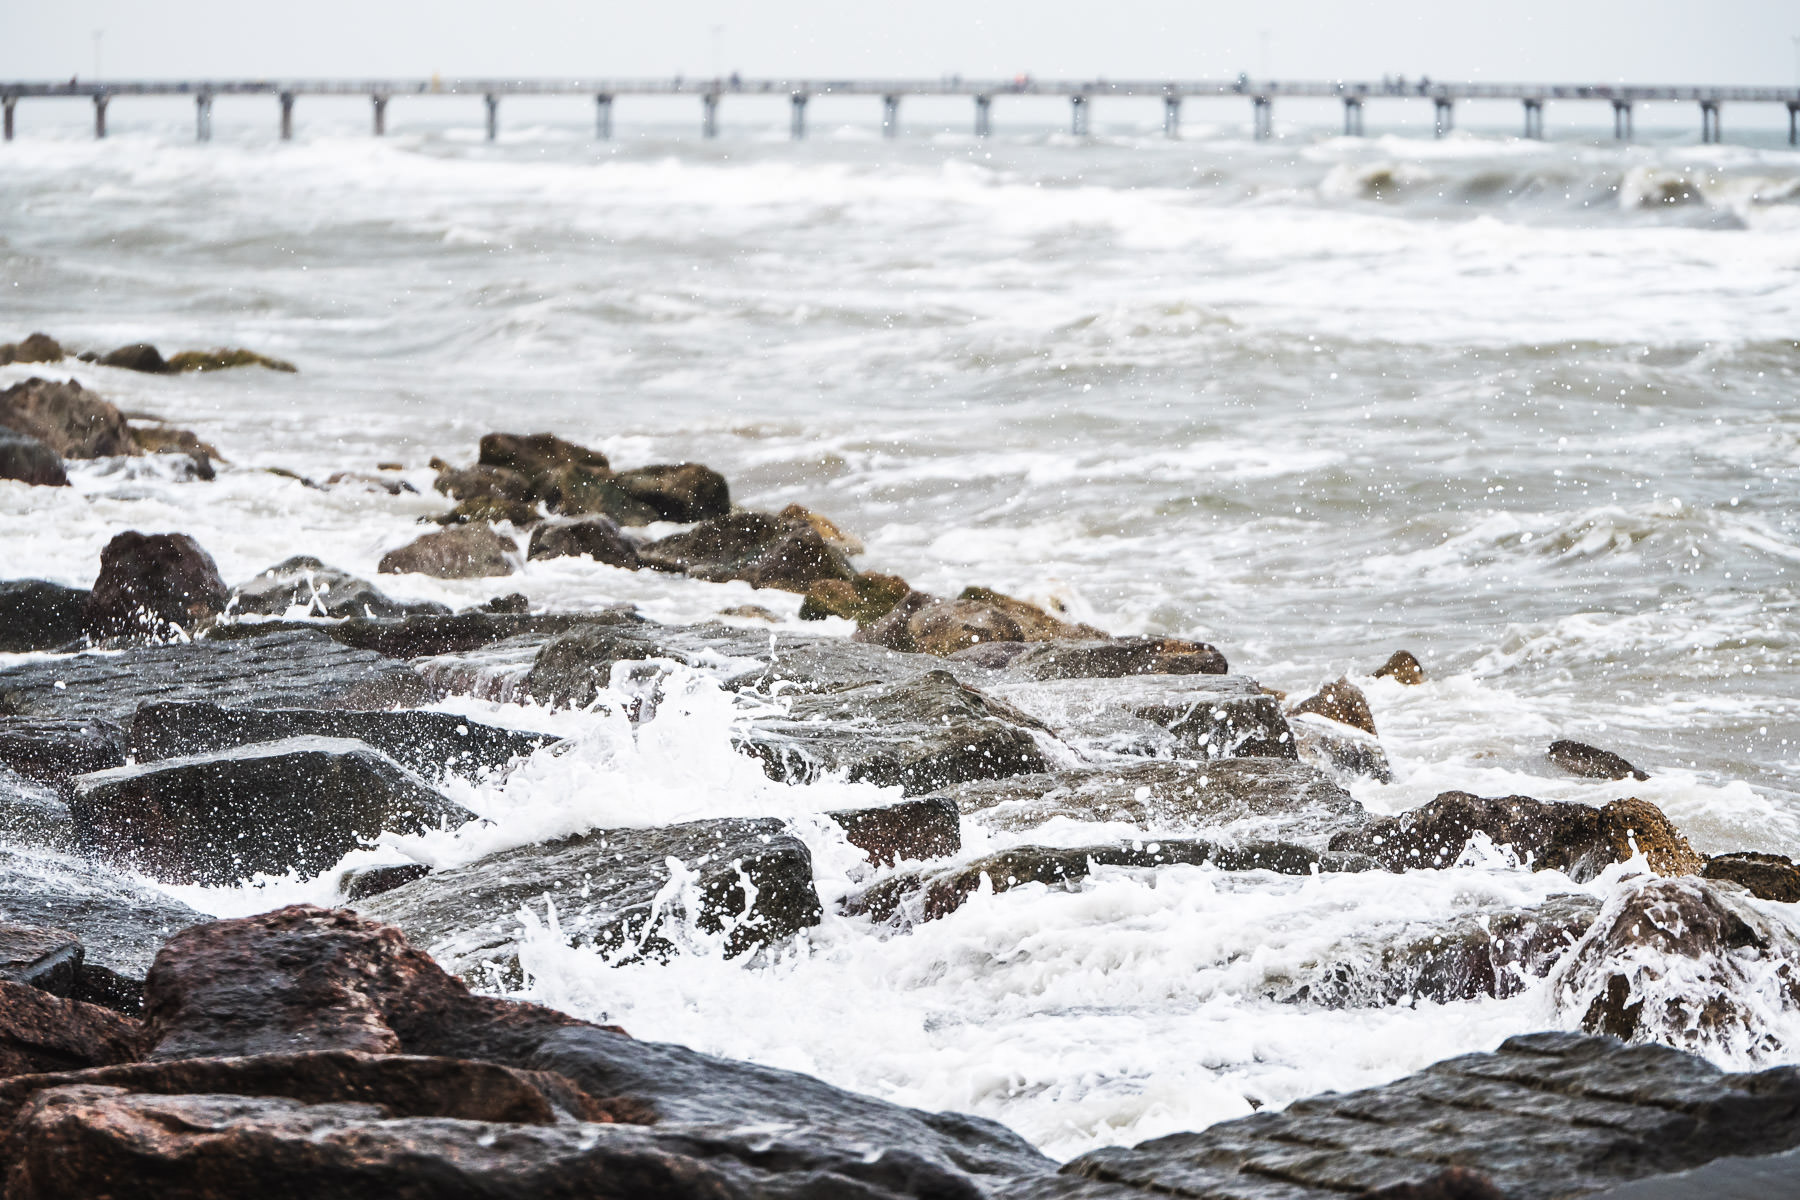 Surf crashes onto granite blocks along the seawall in Galveston, Texas.